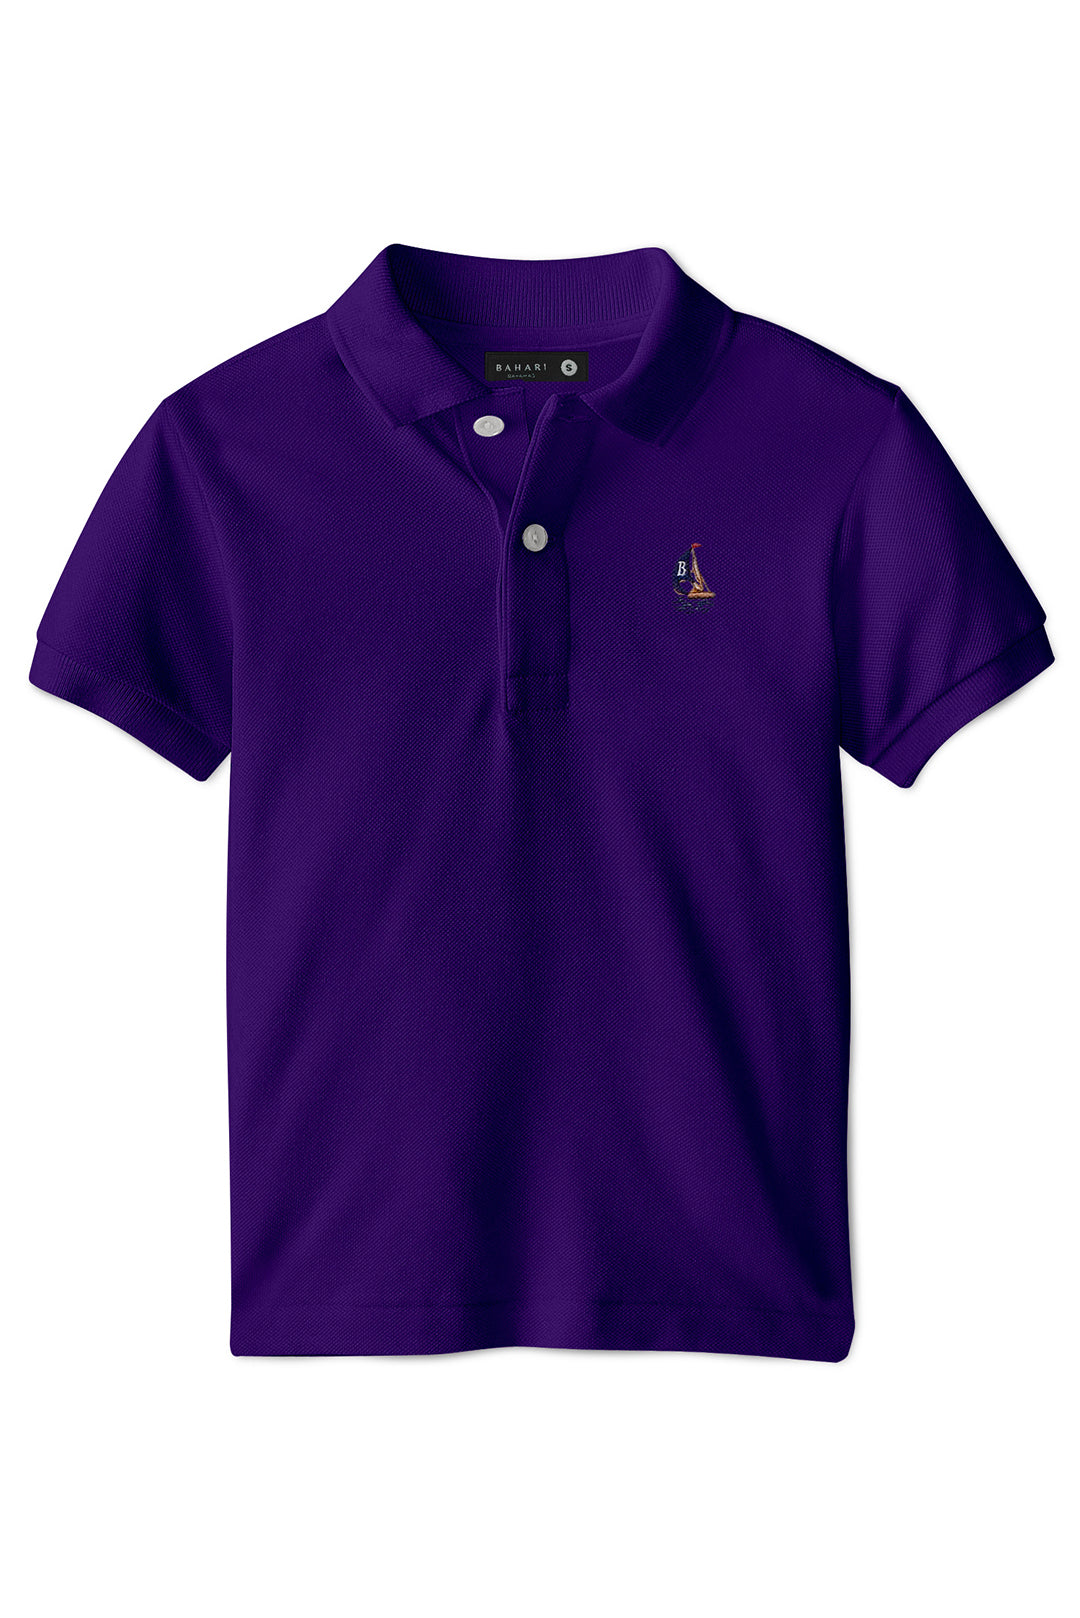 THE CLASSIC POLO- PURPLE